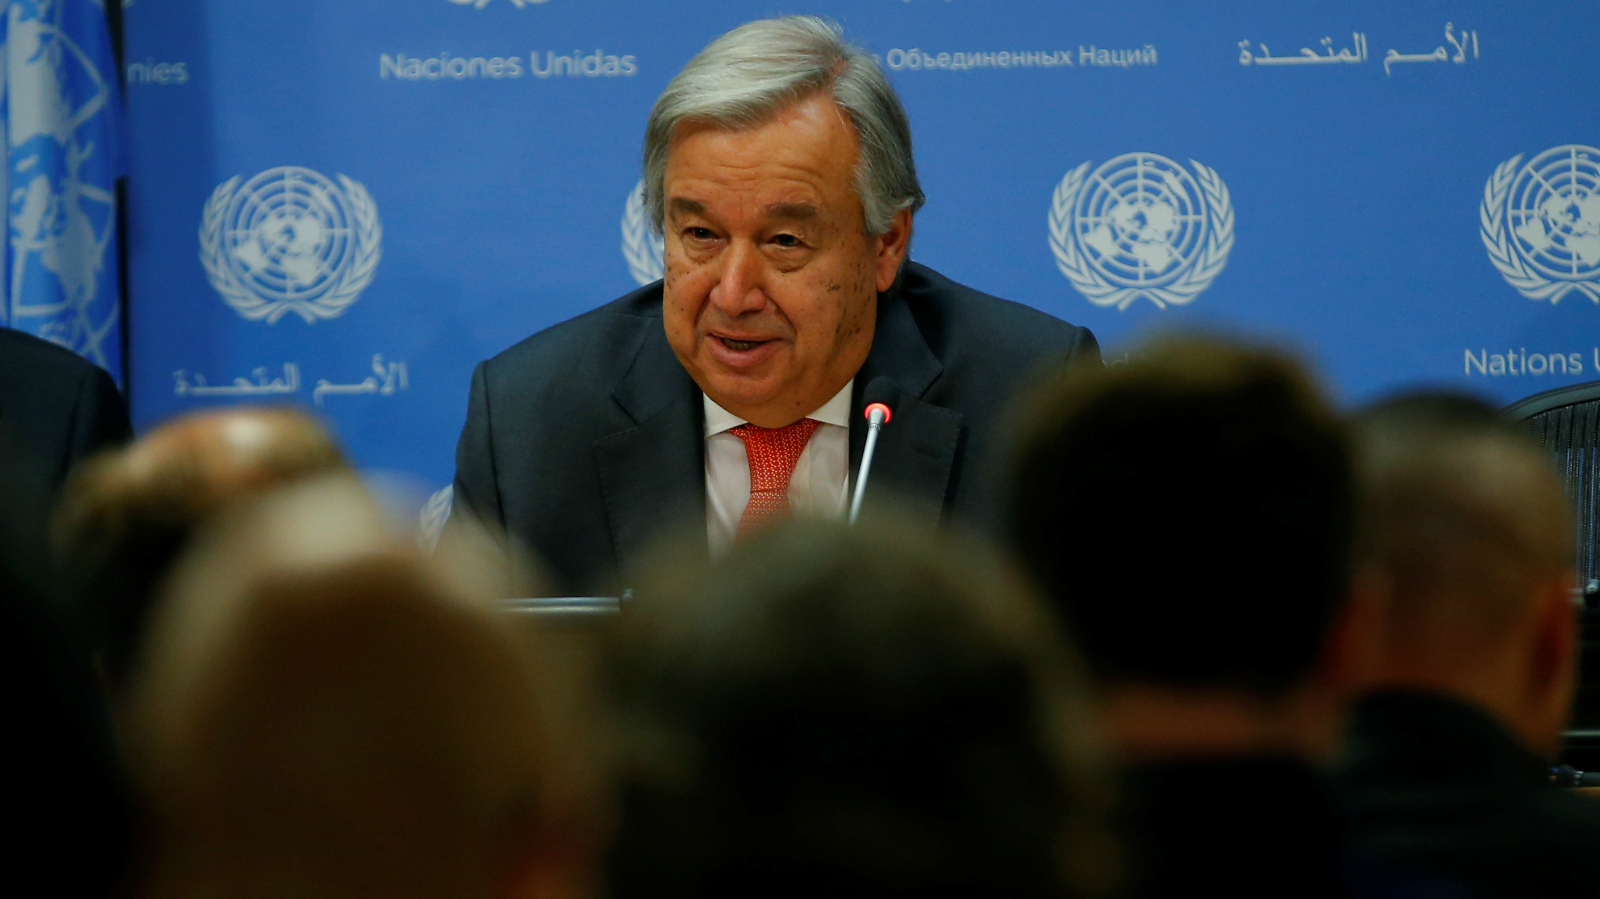 UN Secretary General Antonio Guterres speaks at a news conference ahead of the 72nd United Nations General Assembly at U.N. headquarters in New York, September 13, 2017.